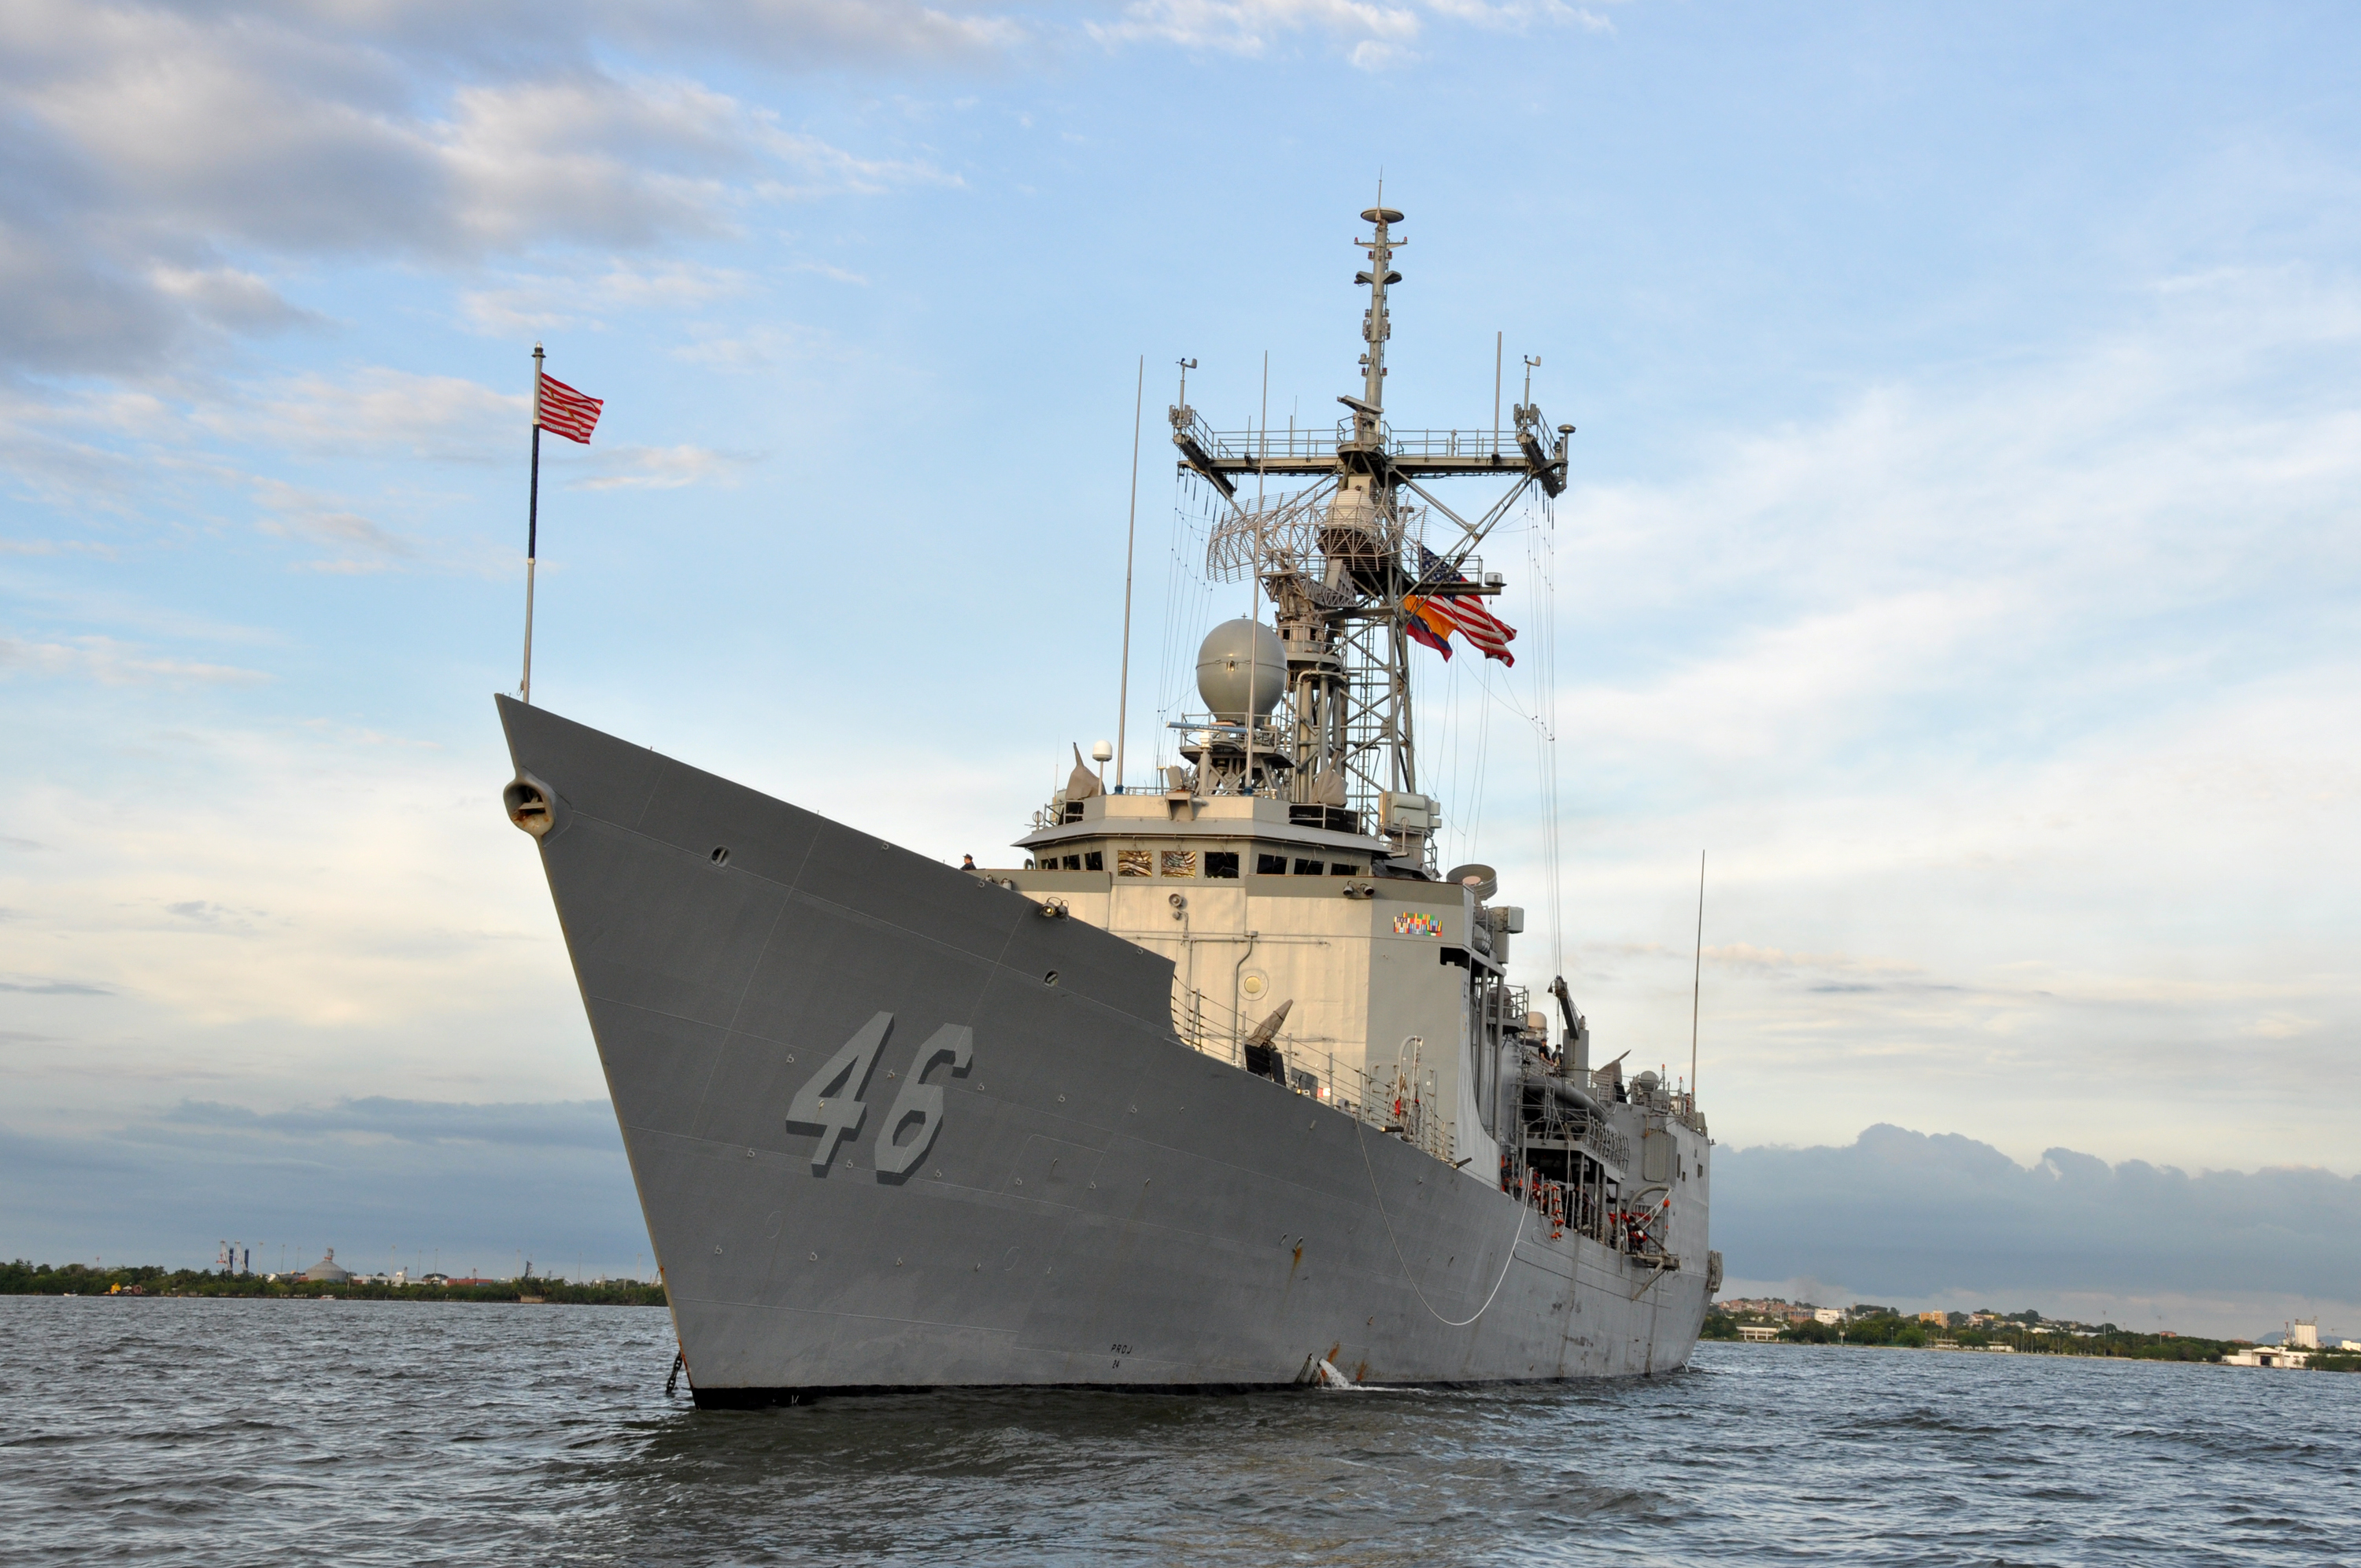 USS RENTZ FFG-46 am 07.09.2013 in Cartagena, KolumbienBild: U.S. Navy